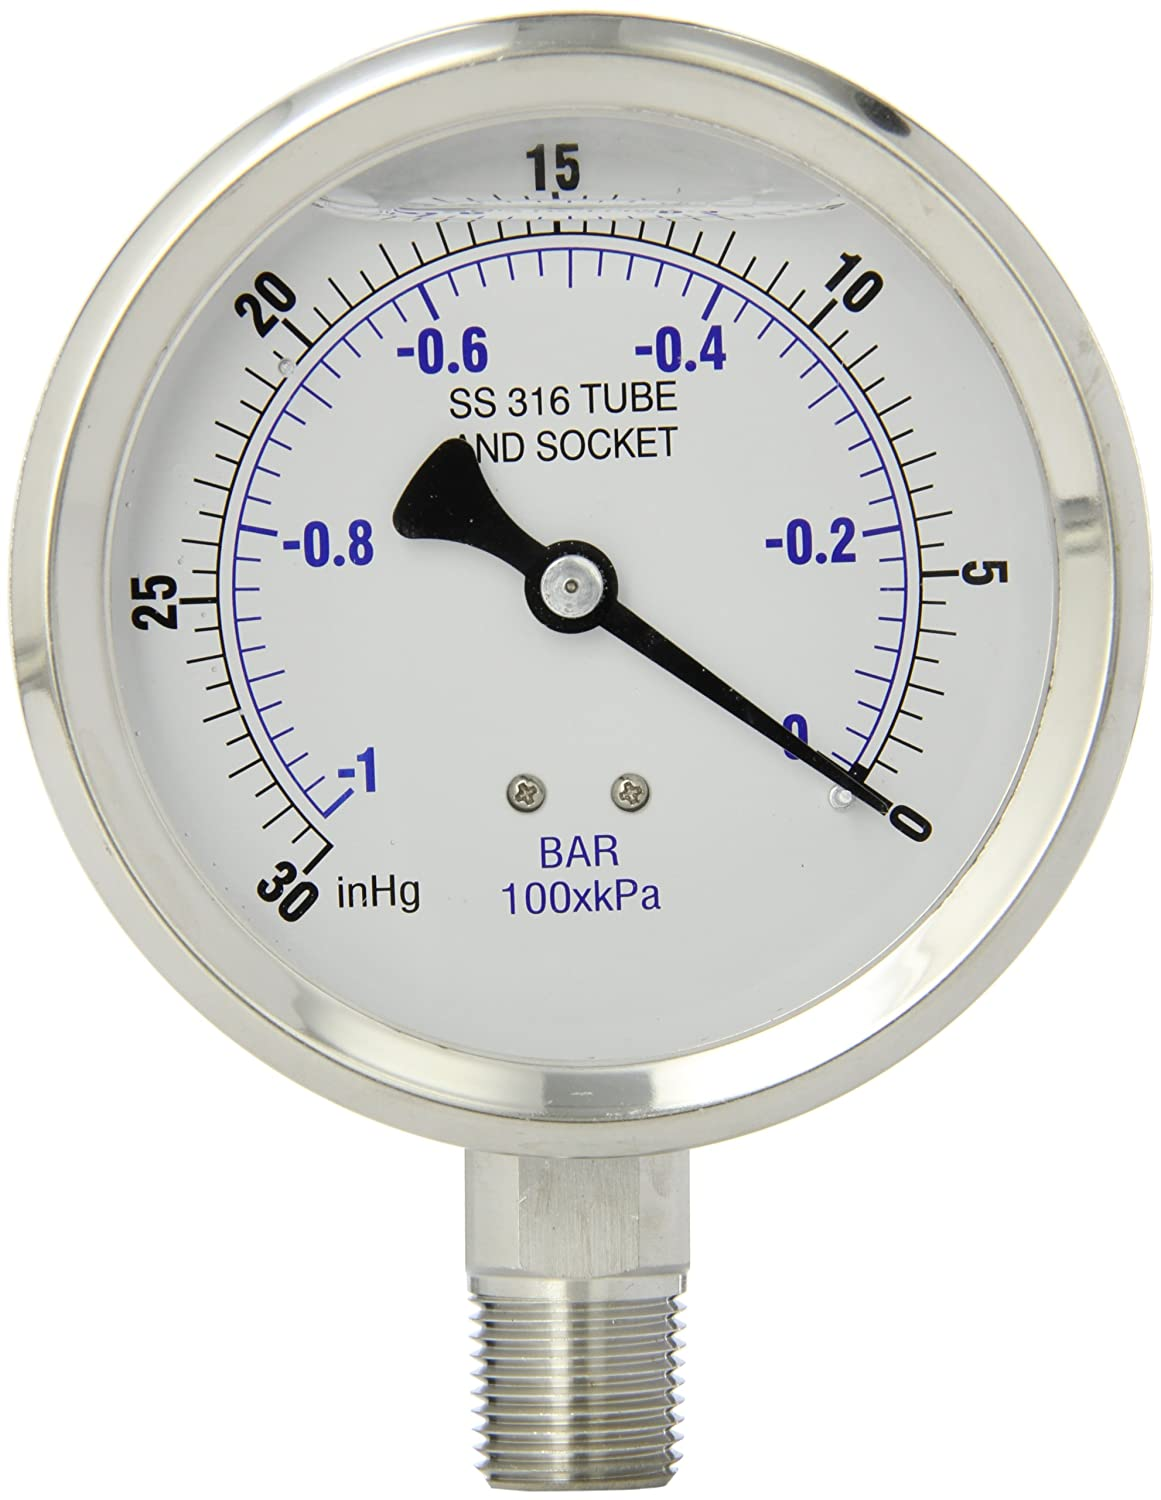 Stainless Steel Bezel Bottom Mount Glycerine Filled Pressure Gauge with a Stainless Steel Case and Internals 1//2 Male NPT Connection Size 30//0 hg Vacuum psi Range PIC Gauge 301L-402A 4 Dial and Polycarbonate Lens 30//0 hg Vacuum psi Range PIC Gauges